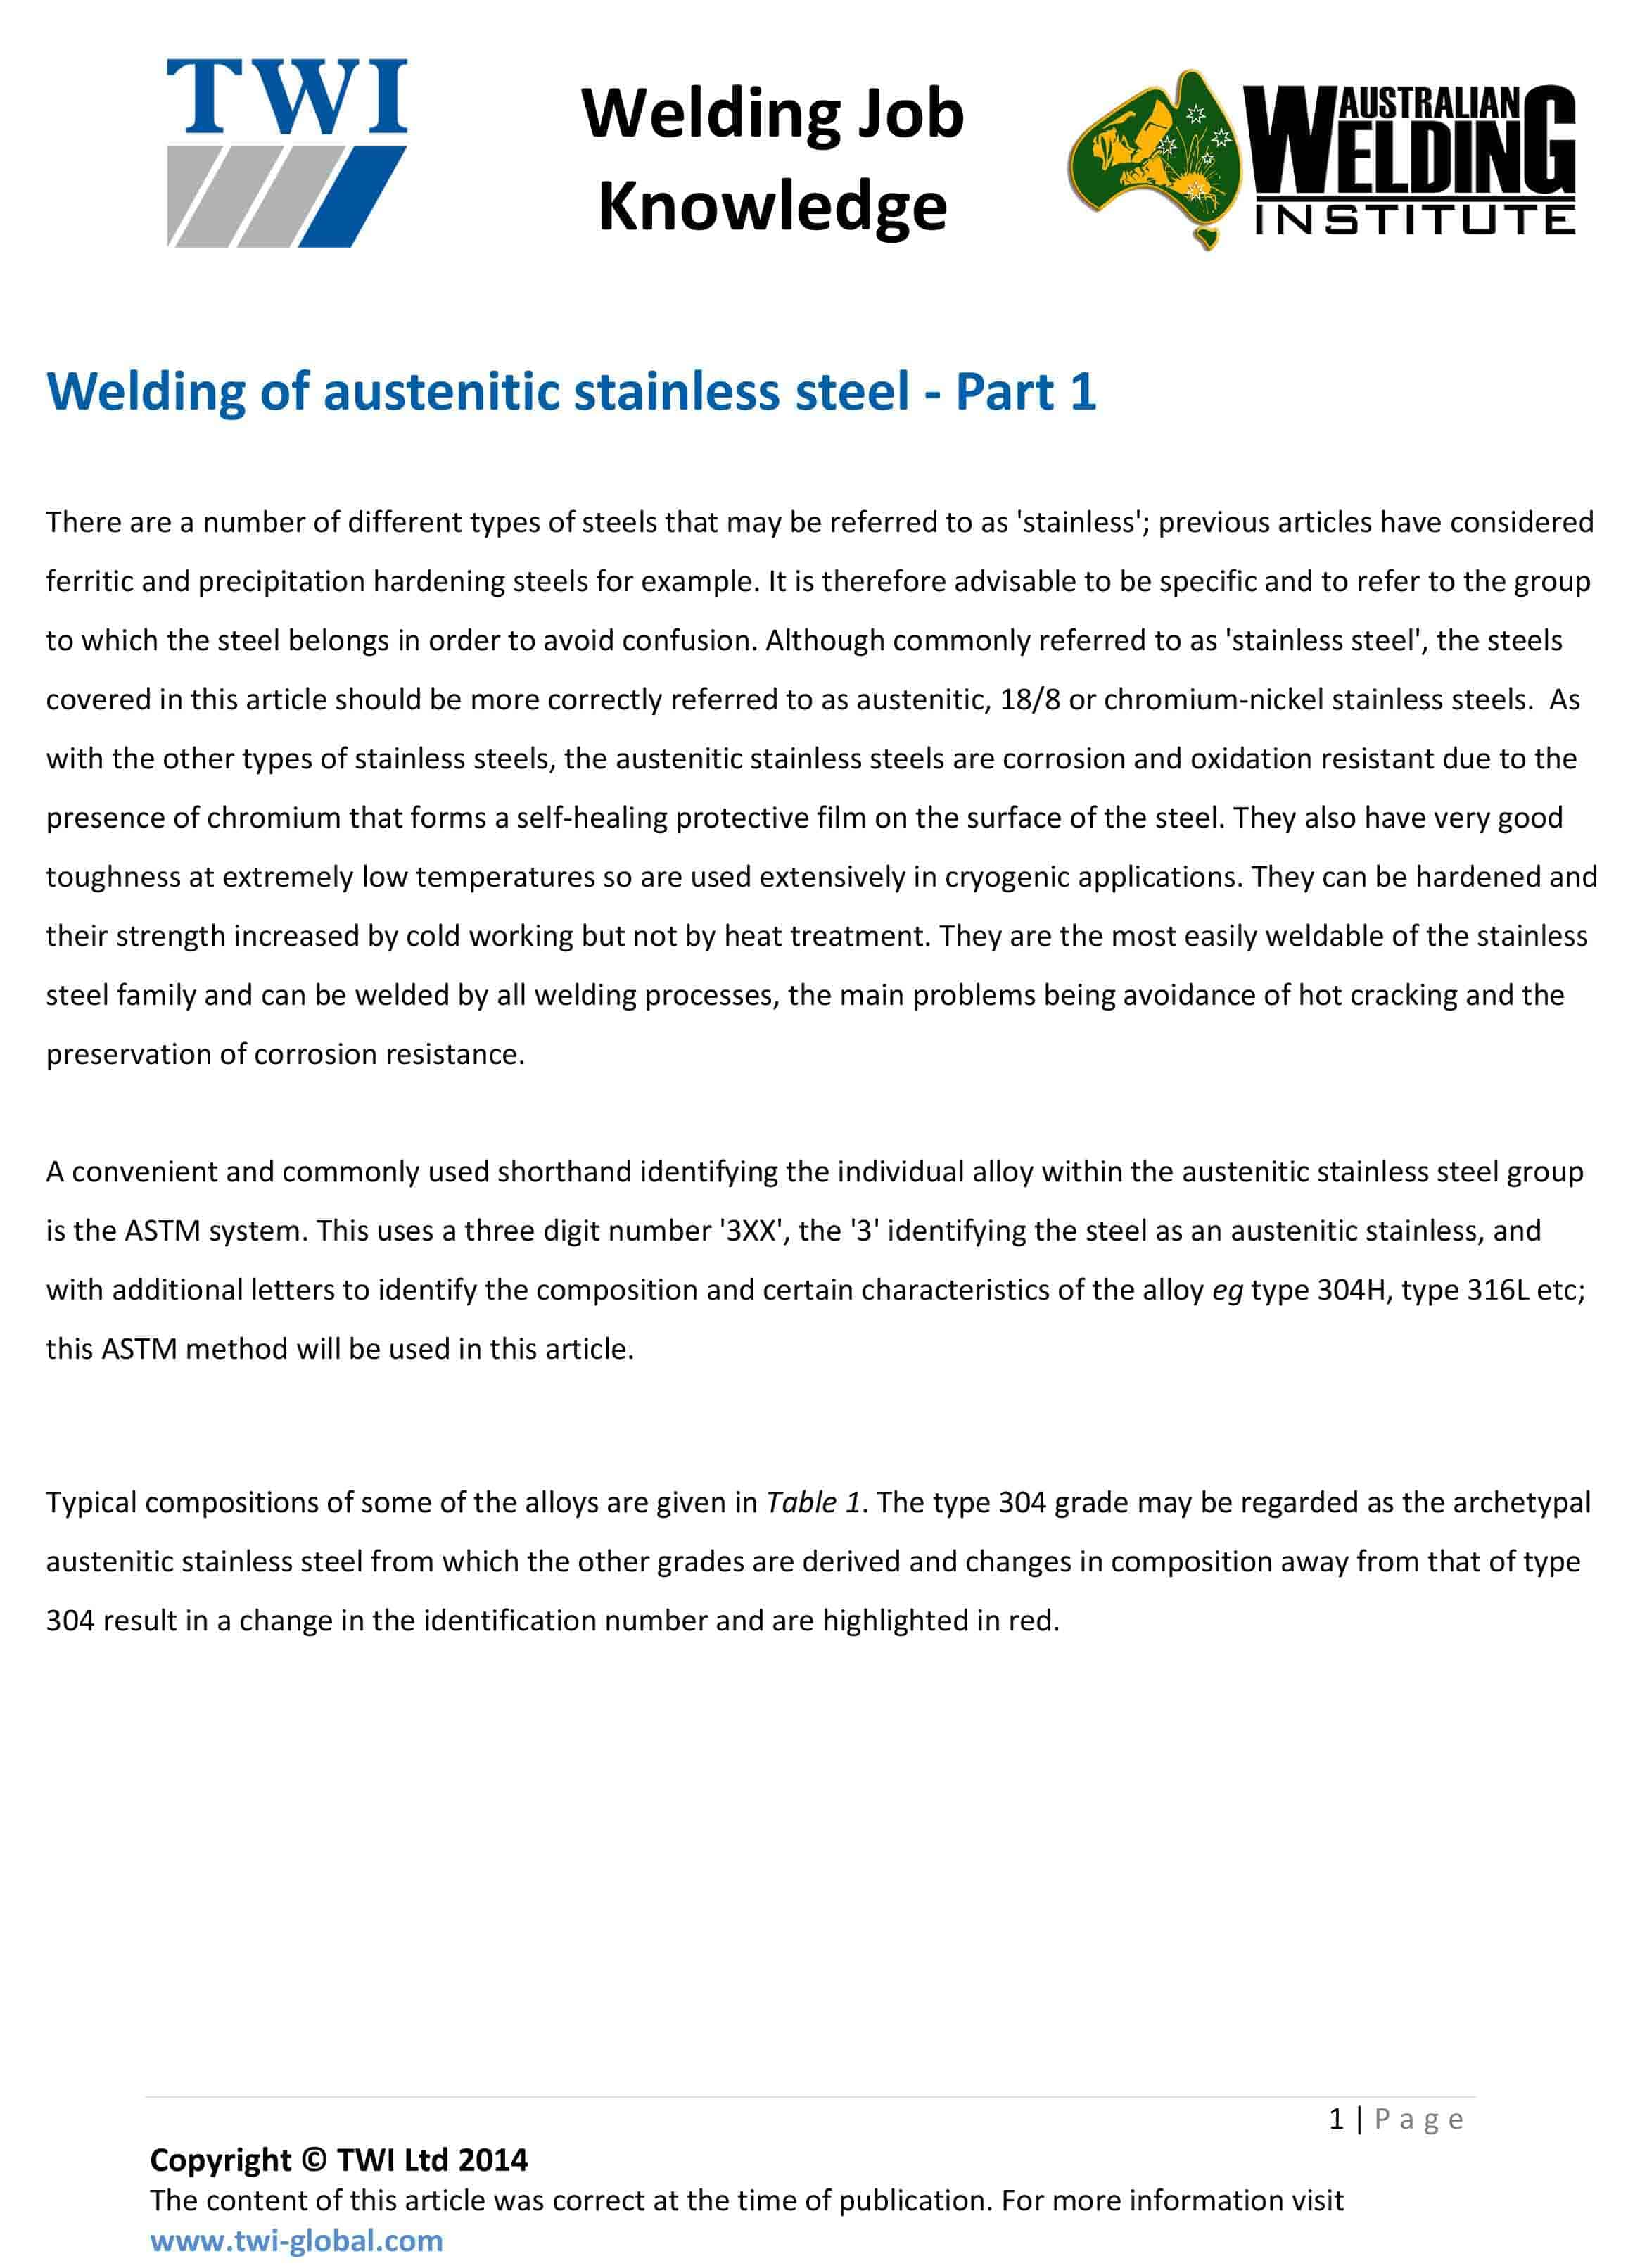 WELDING OF AUSTENITIC STAINLESS STEEL PART 1